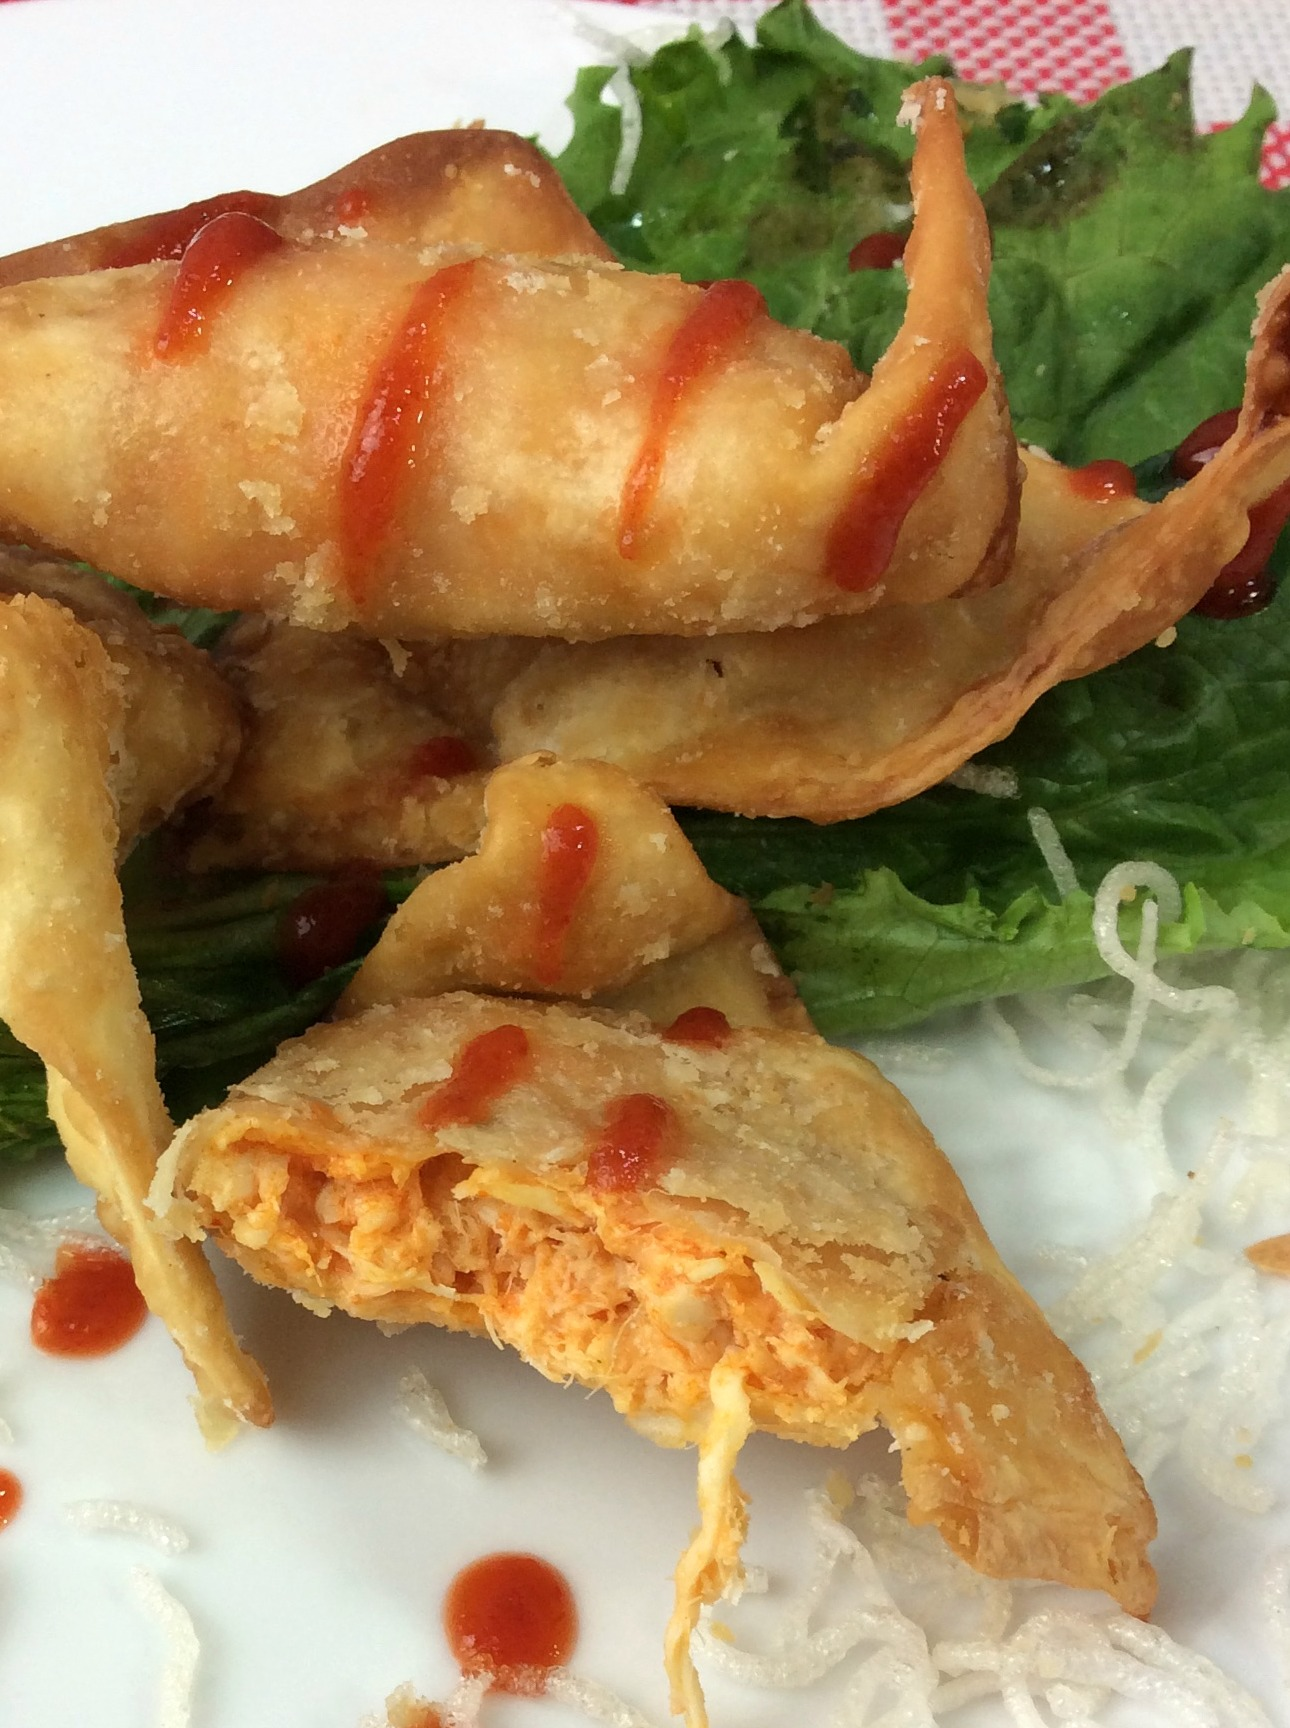 The Cheesecake Buffalo Blasts copycat recipe is filled with Chicken, Cheese and Spicy Buffalo Sauce in a fried wonton wrapper. It is fried to add the perfect amount of crunch.